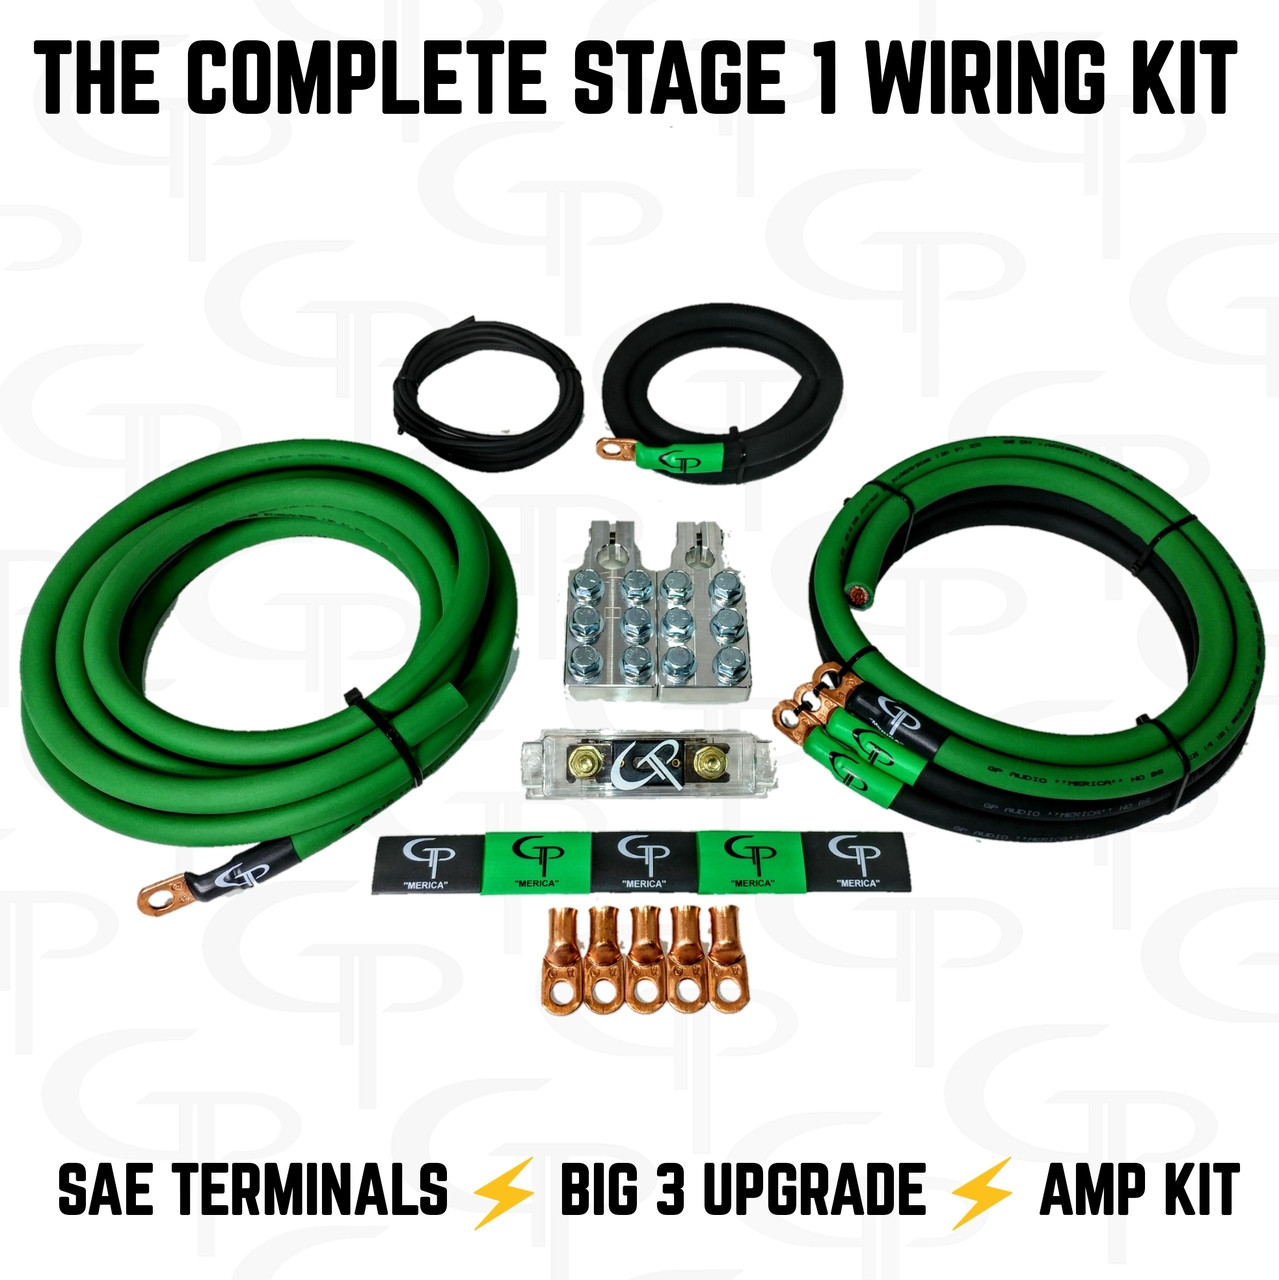 *The Complete: 1/0 AWG Stage 1 Wiring Kit